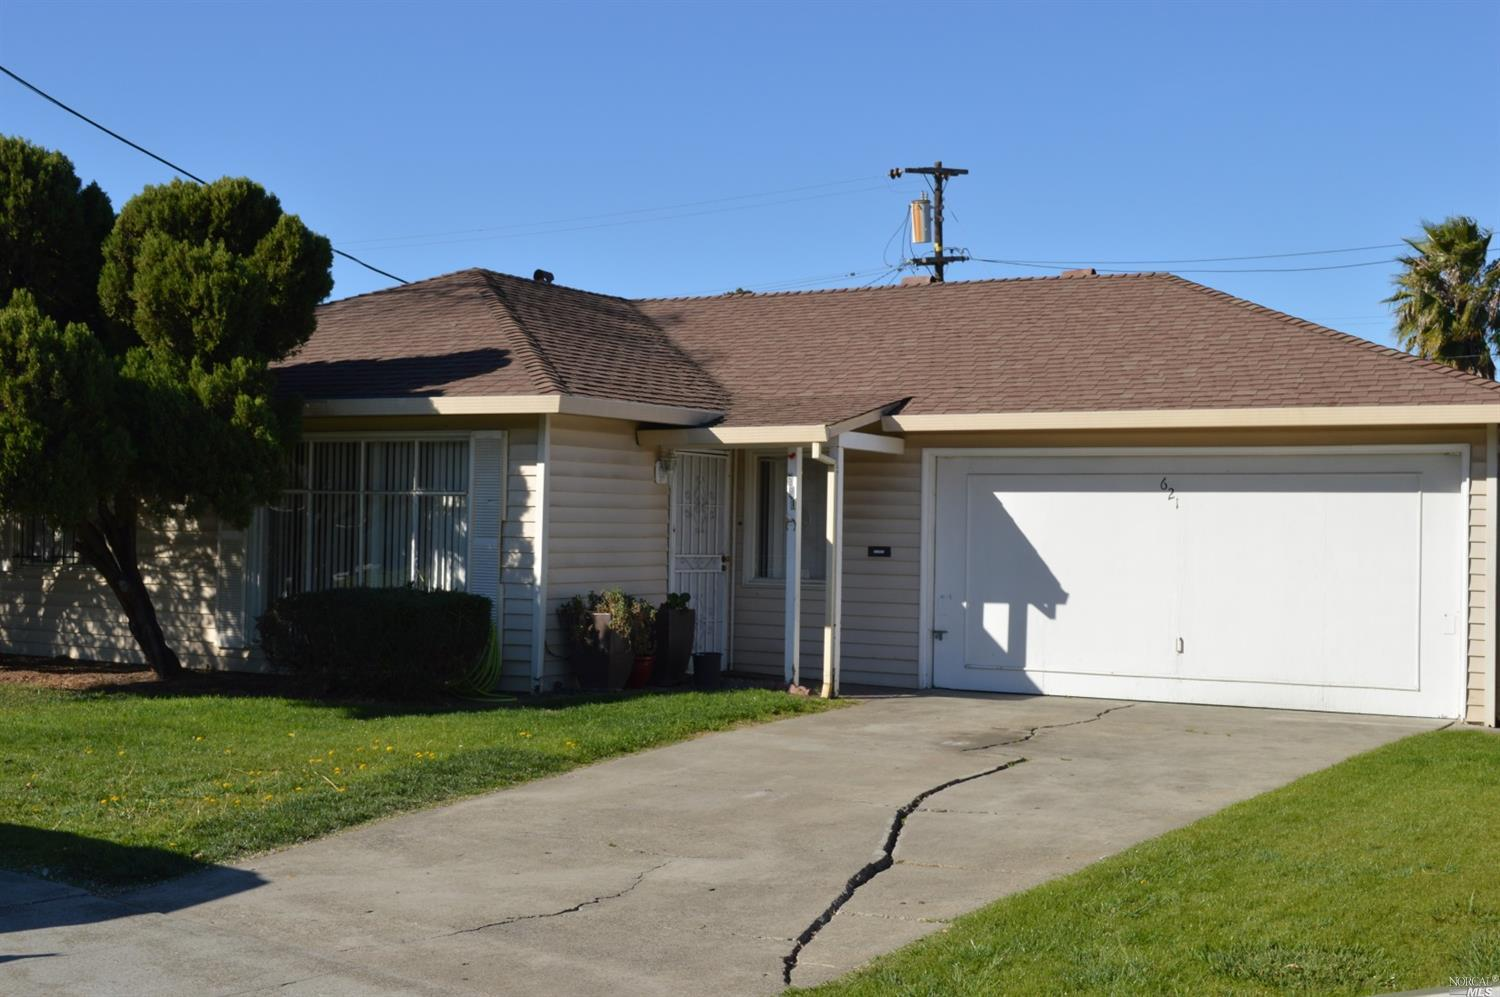 WOW! Now is you chance to own this nice 3 bedroom 1 bath mid century home on large lot. Lots of orig